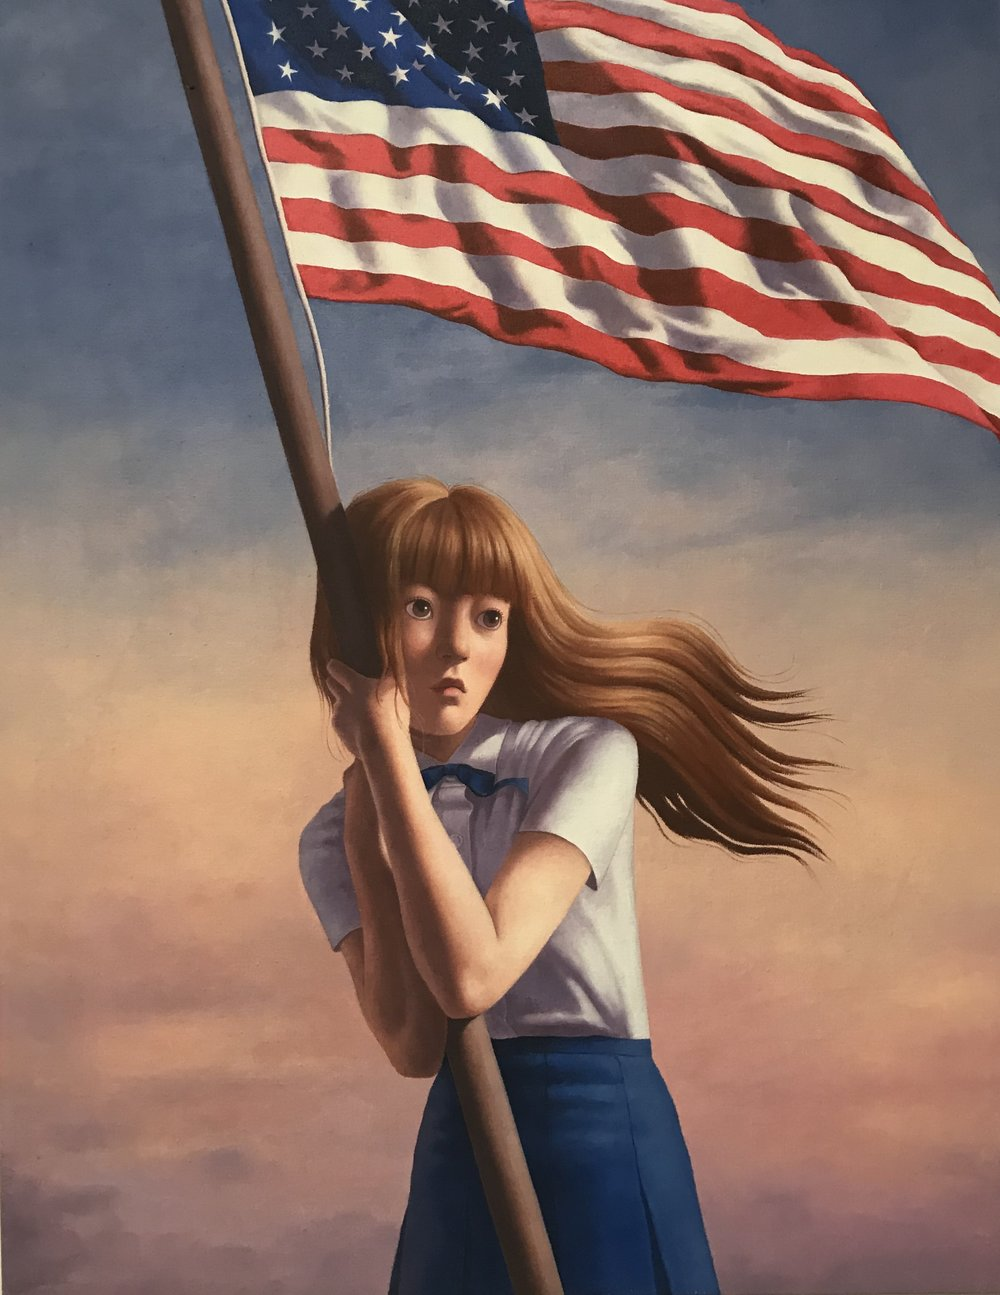 En Hong, Girl with Flag. Oil on canvas; 14 x 18 in.